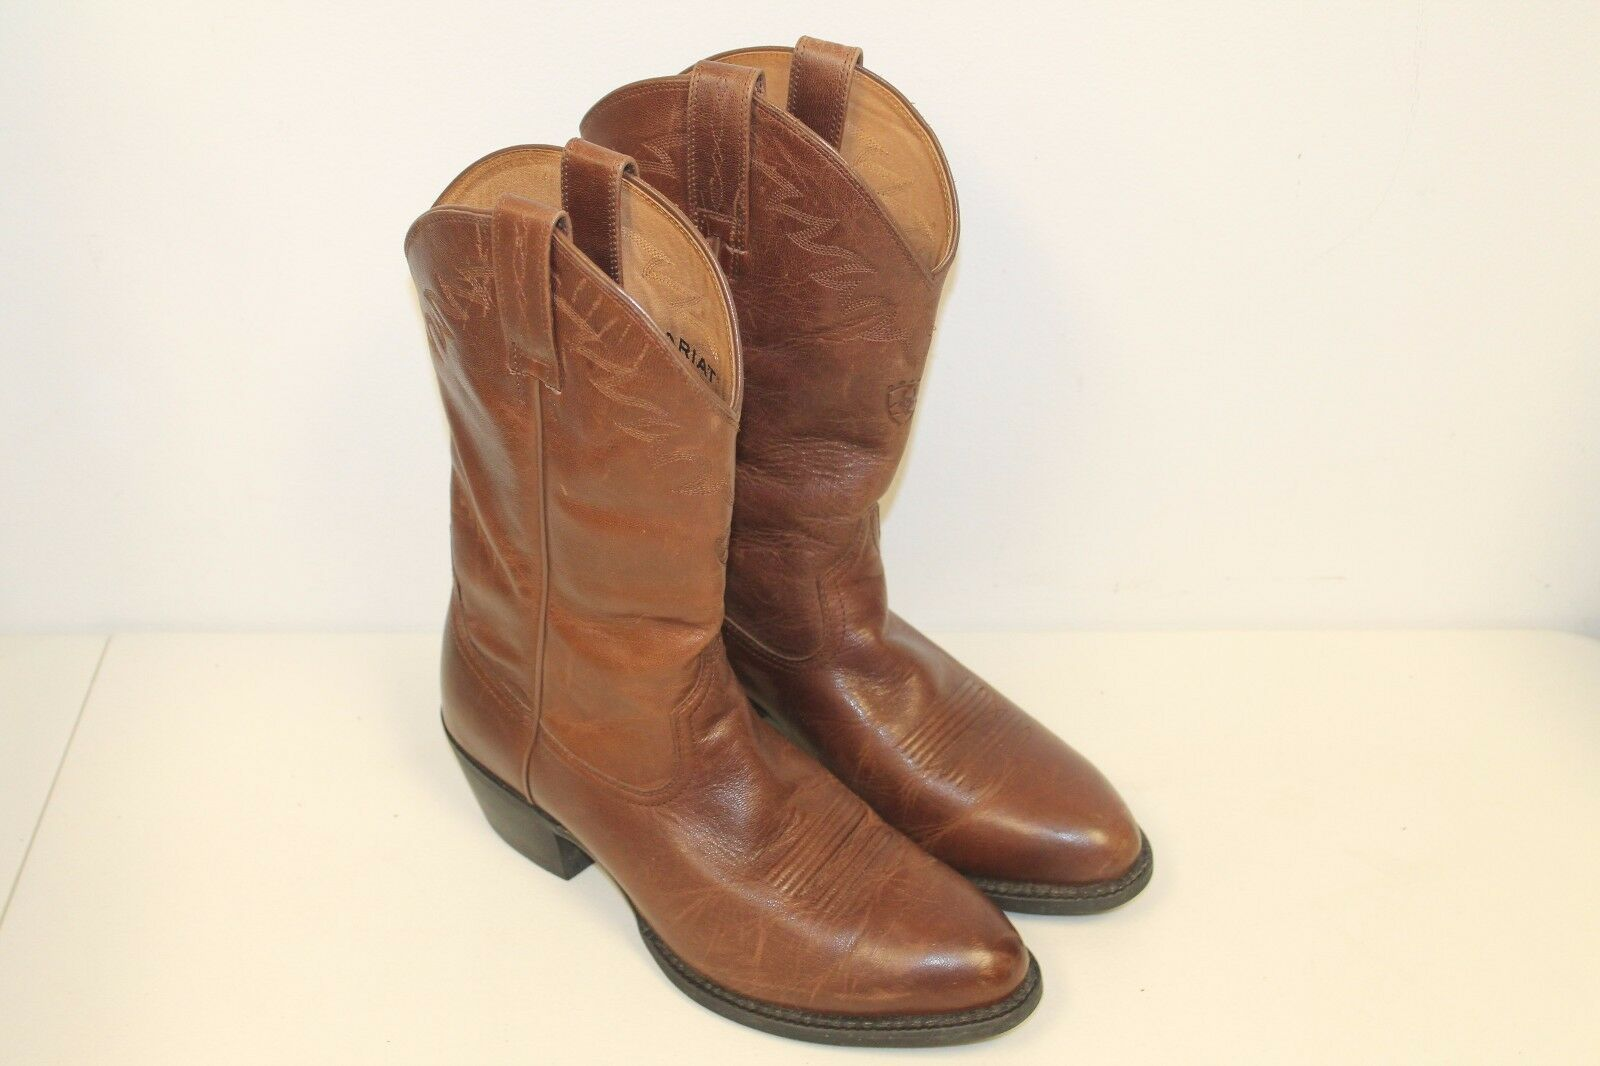 Ariat Mens Cowboy stivali Dimensione 9.5 D Marroneee Leather Style 10006306